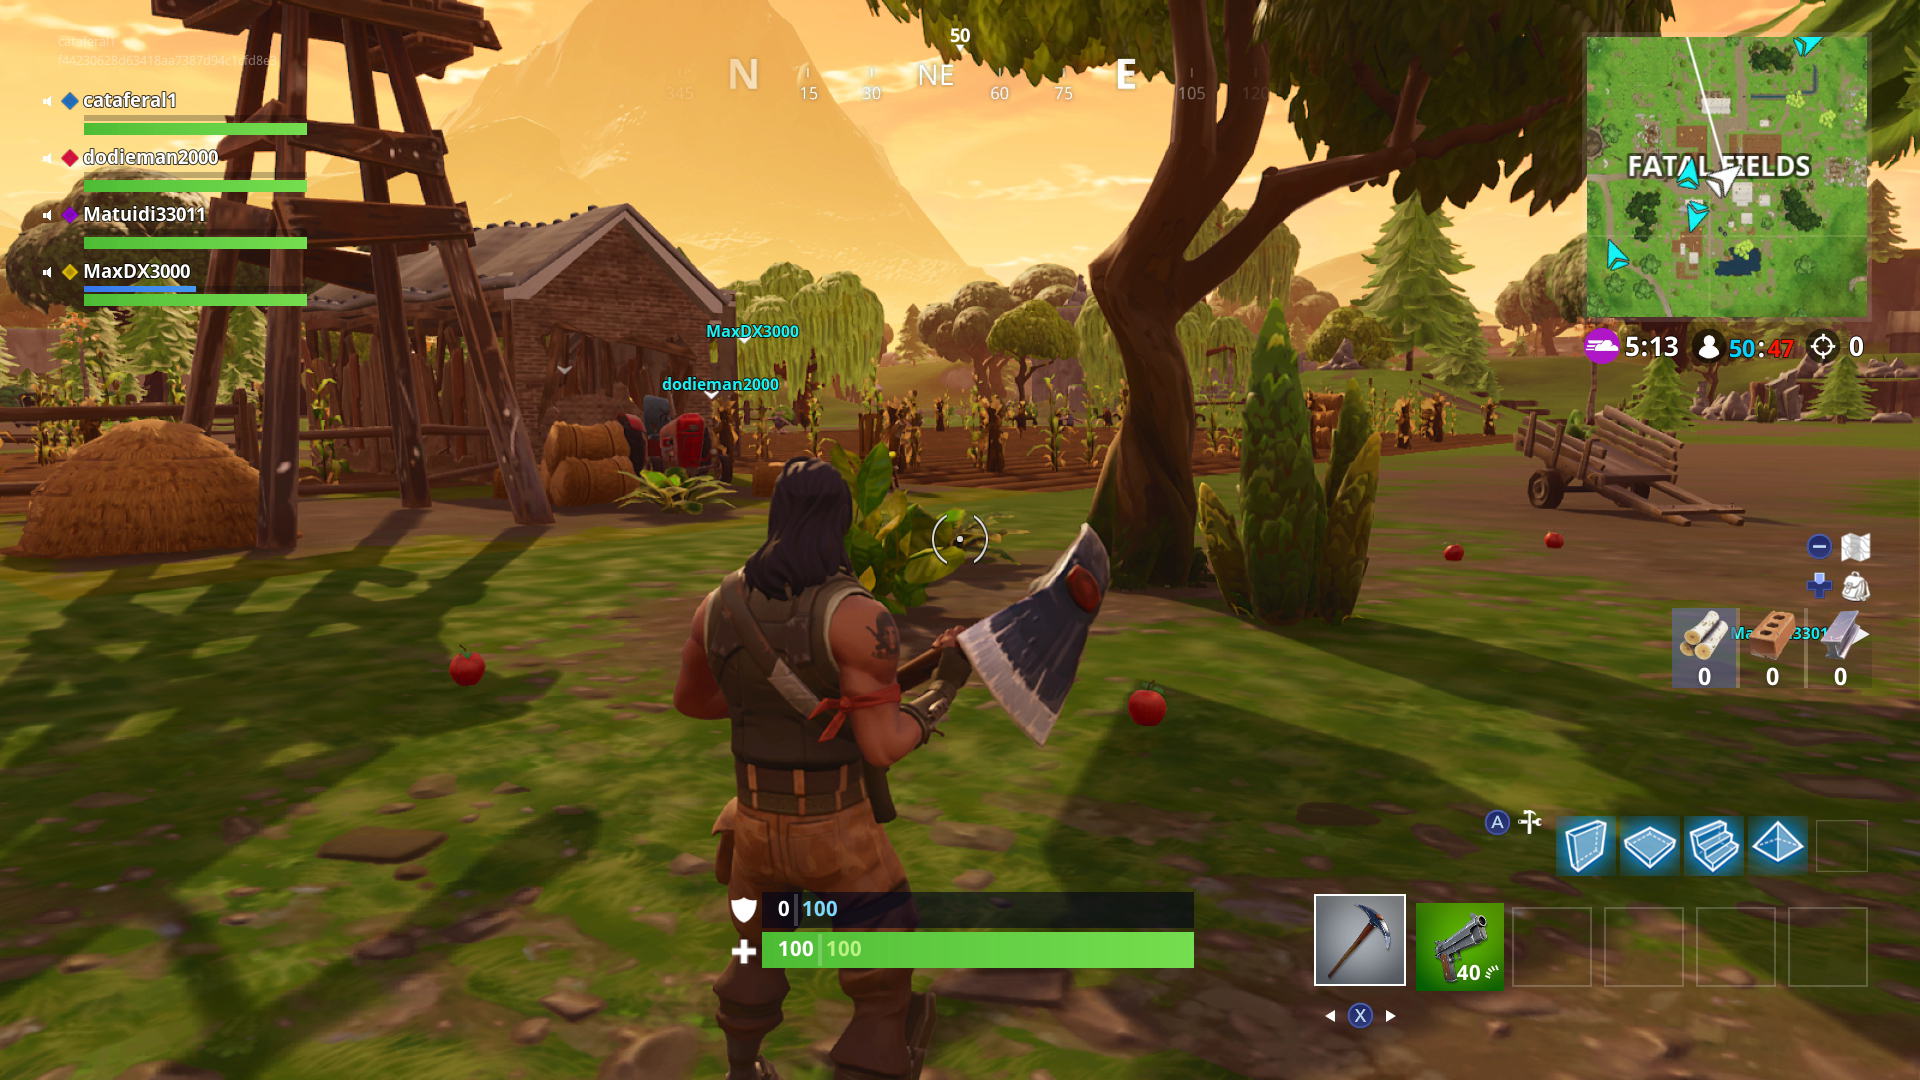 foliage draw distances and texture filtering also see a drop in quality meaning more pop in but on switch s smaller screen it s hard to notice - 50 vs 50 fortnite xbox